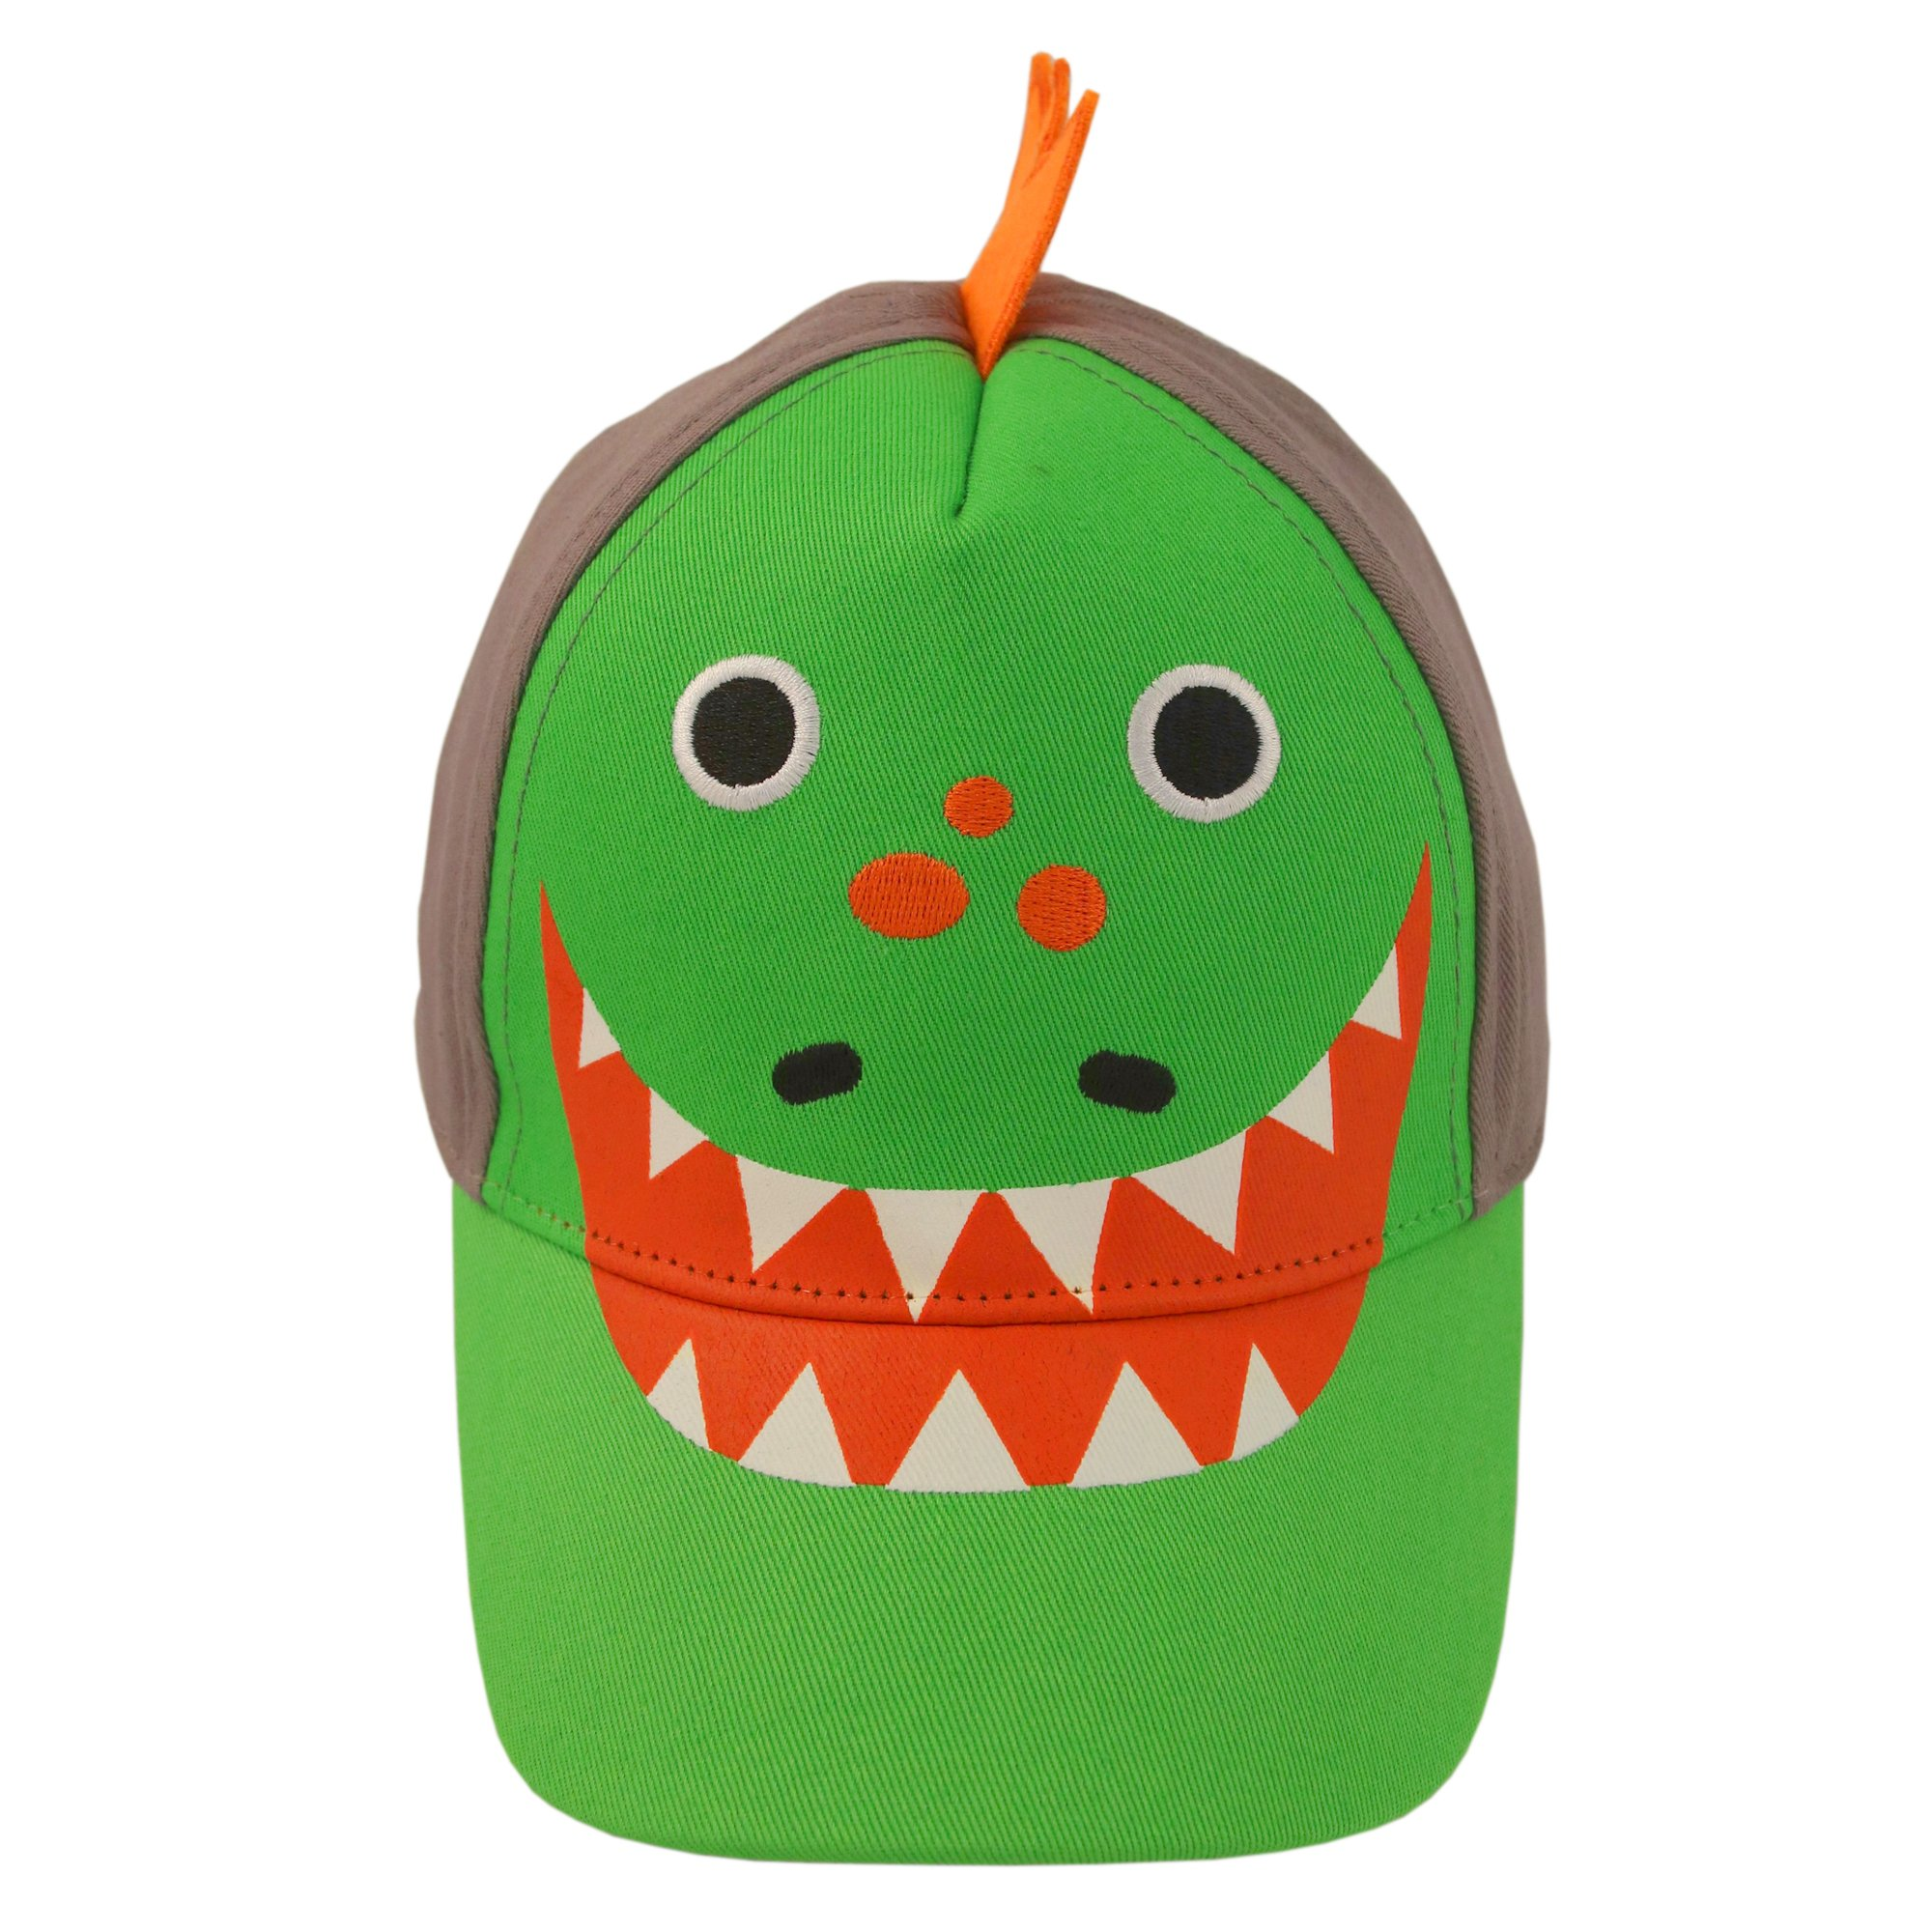 ABG Accessories Toddler Boys Cotton Baseball Cap with Assorted Animal Critter Designs, Age 2-4 (Dinosaur Design – Green/Grey) by ABG Accessories (Image #4)